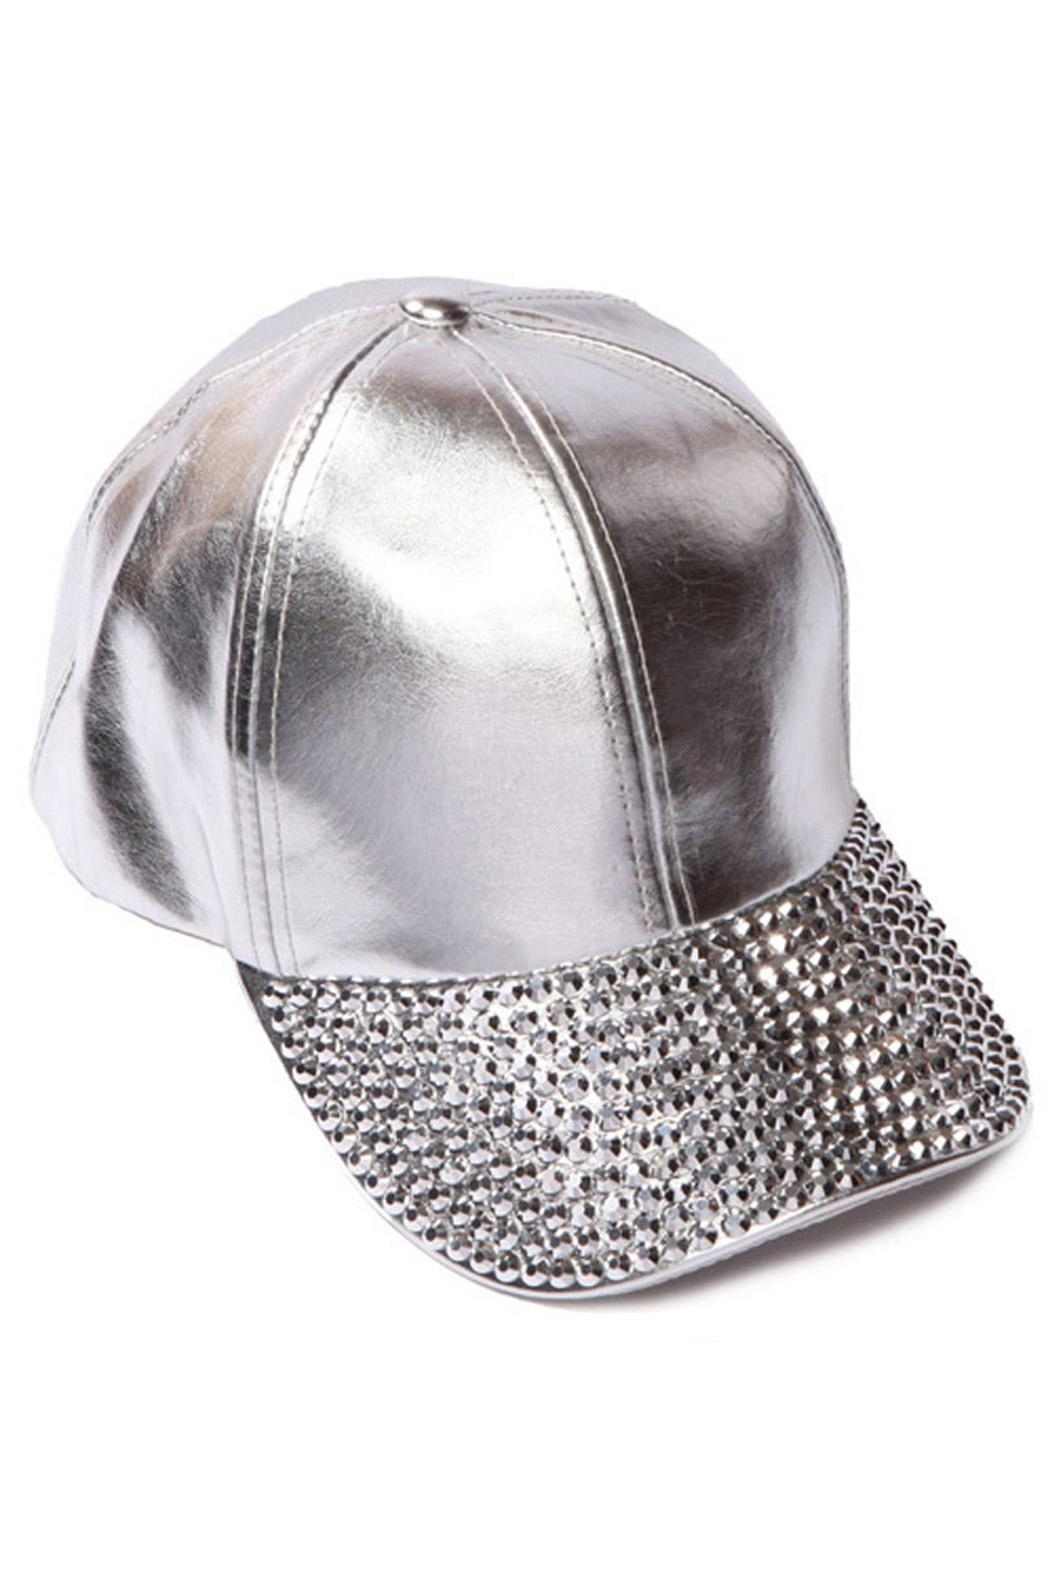 Something Special Metallic Baseball Cap from Iowa by Love   Lace ... accf9bcc692